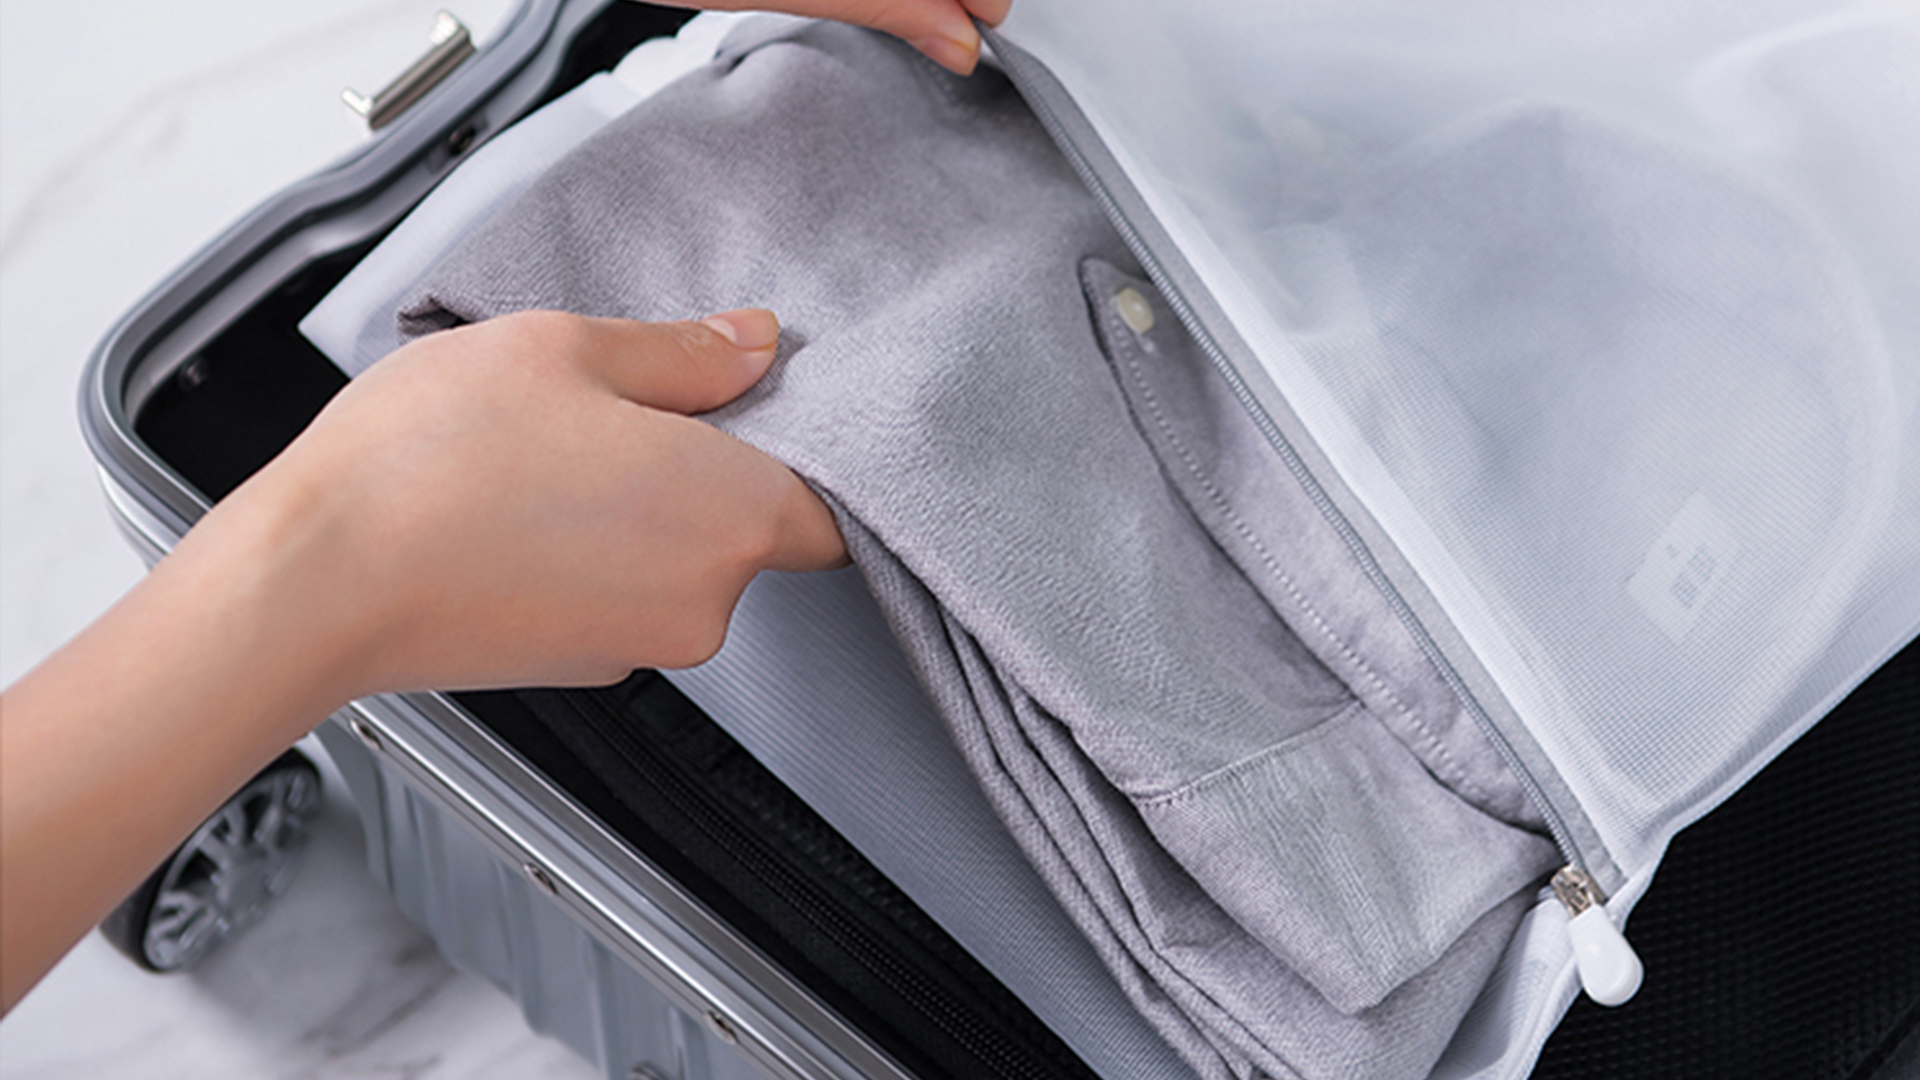 Homely Laundry Bag 5 in 1 11 - Sneapy